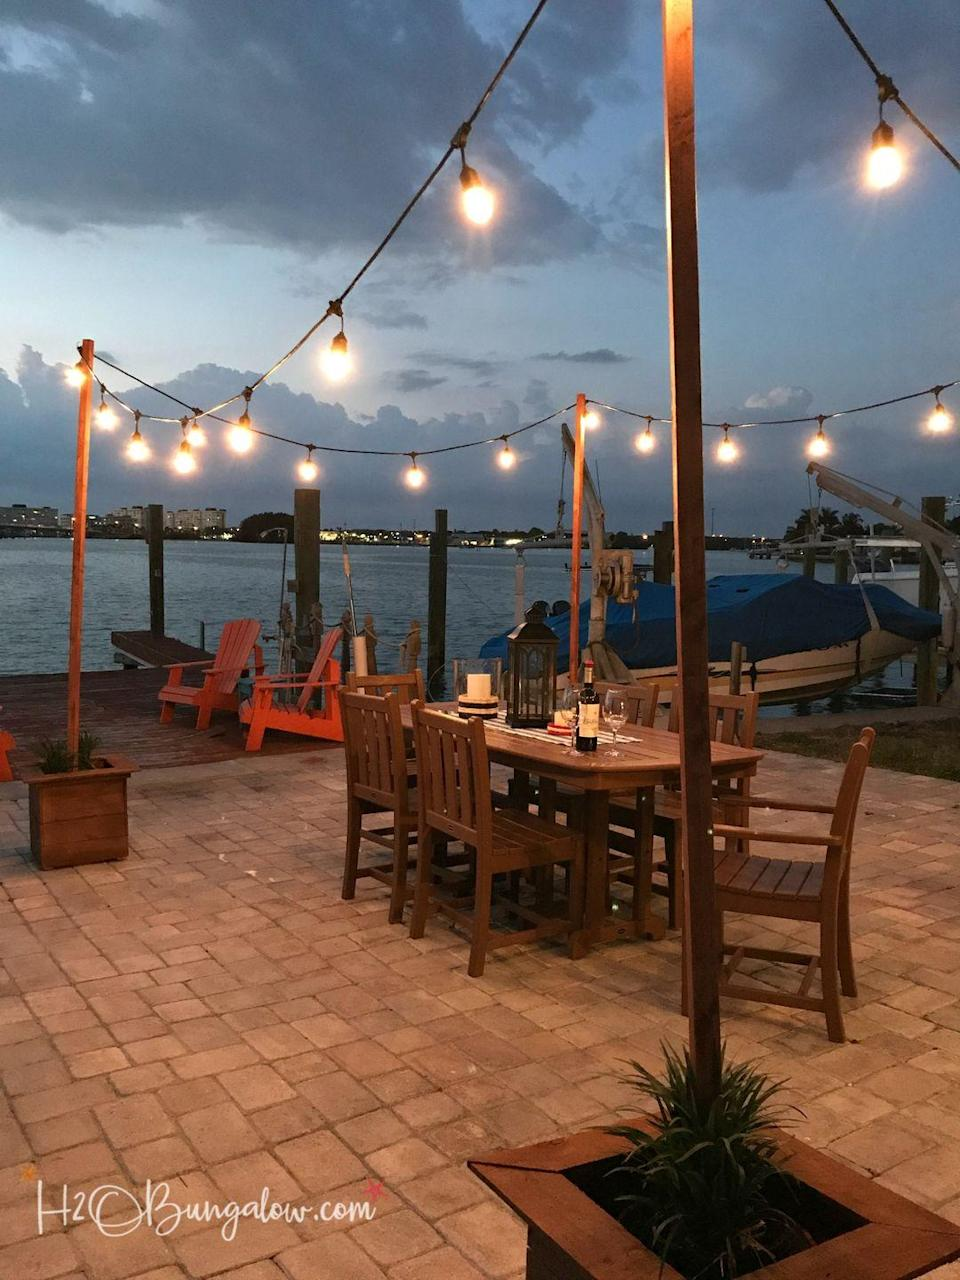 """<p>Whether you have an ocean- or river-side sitting area or simply a spacious backyard sans water, hanging simple string lights can make a major impact. And, if you don't have trees to hang them from, you'll be glad this DIY teaches you how to craft poles. </p><p><strong>Get the tutorial at <a href=""""https://h2obungalow.com/diy-outdoor-string-lights-poles/"""" rel=""""nofollow noopener"""" target=""""_blank"""" data-ylk=""""slk:H2O Bungalow"""" class=""""link rapid-noclick-resp"""">H2O Bungalow</a>.</strong></p><p><a class=""""link rapid-noclick-resp"""" href=""""https://www.amazon.com/Outdoor-Commercial-Waterproof-Dimmable-Backyard/dp/B07HSYVD1M/?tag=syn-yahoo-20&ascsubtag=%5Bartid%7C10050.g.31137877%5Bsrc%7Cyahoo-us"""" rel=""""nofollow noopener"""" target=""""_blank"""" data-ylk=""""slk:SHOP STRING LIGHTS"""">SHOP STRING LIGHTS</a></p>"""